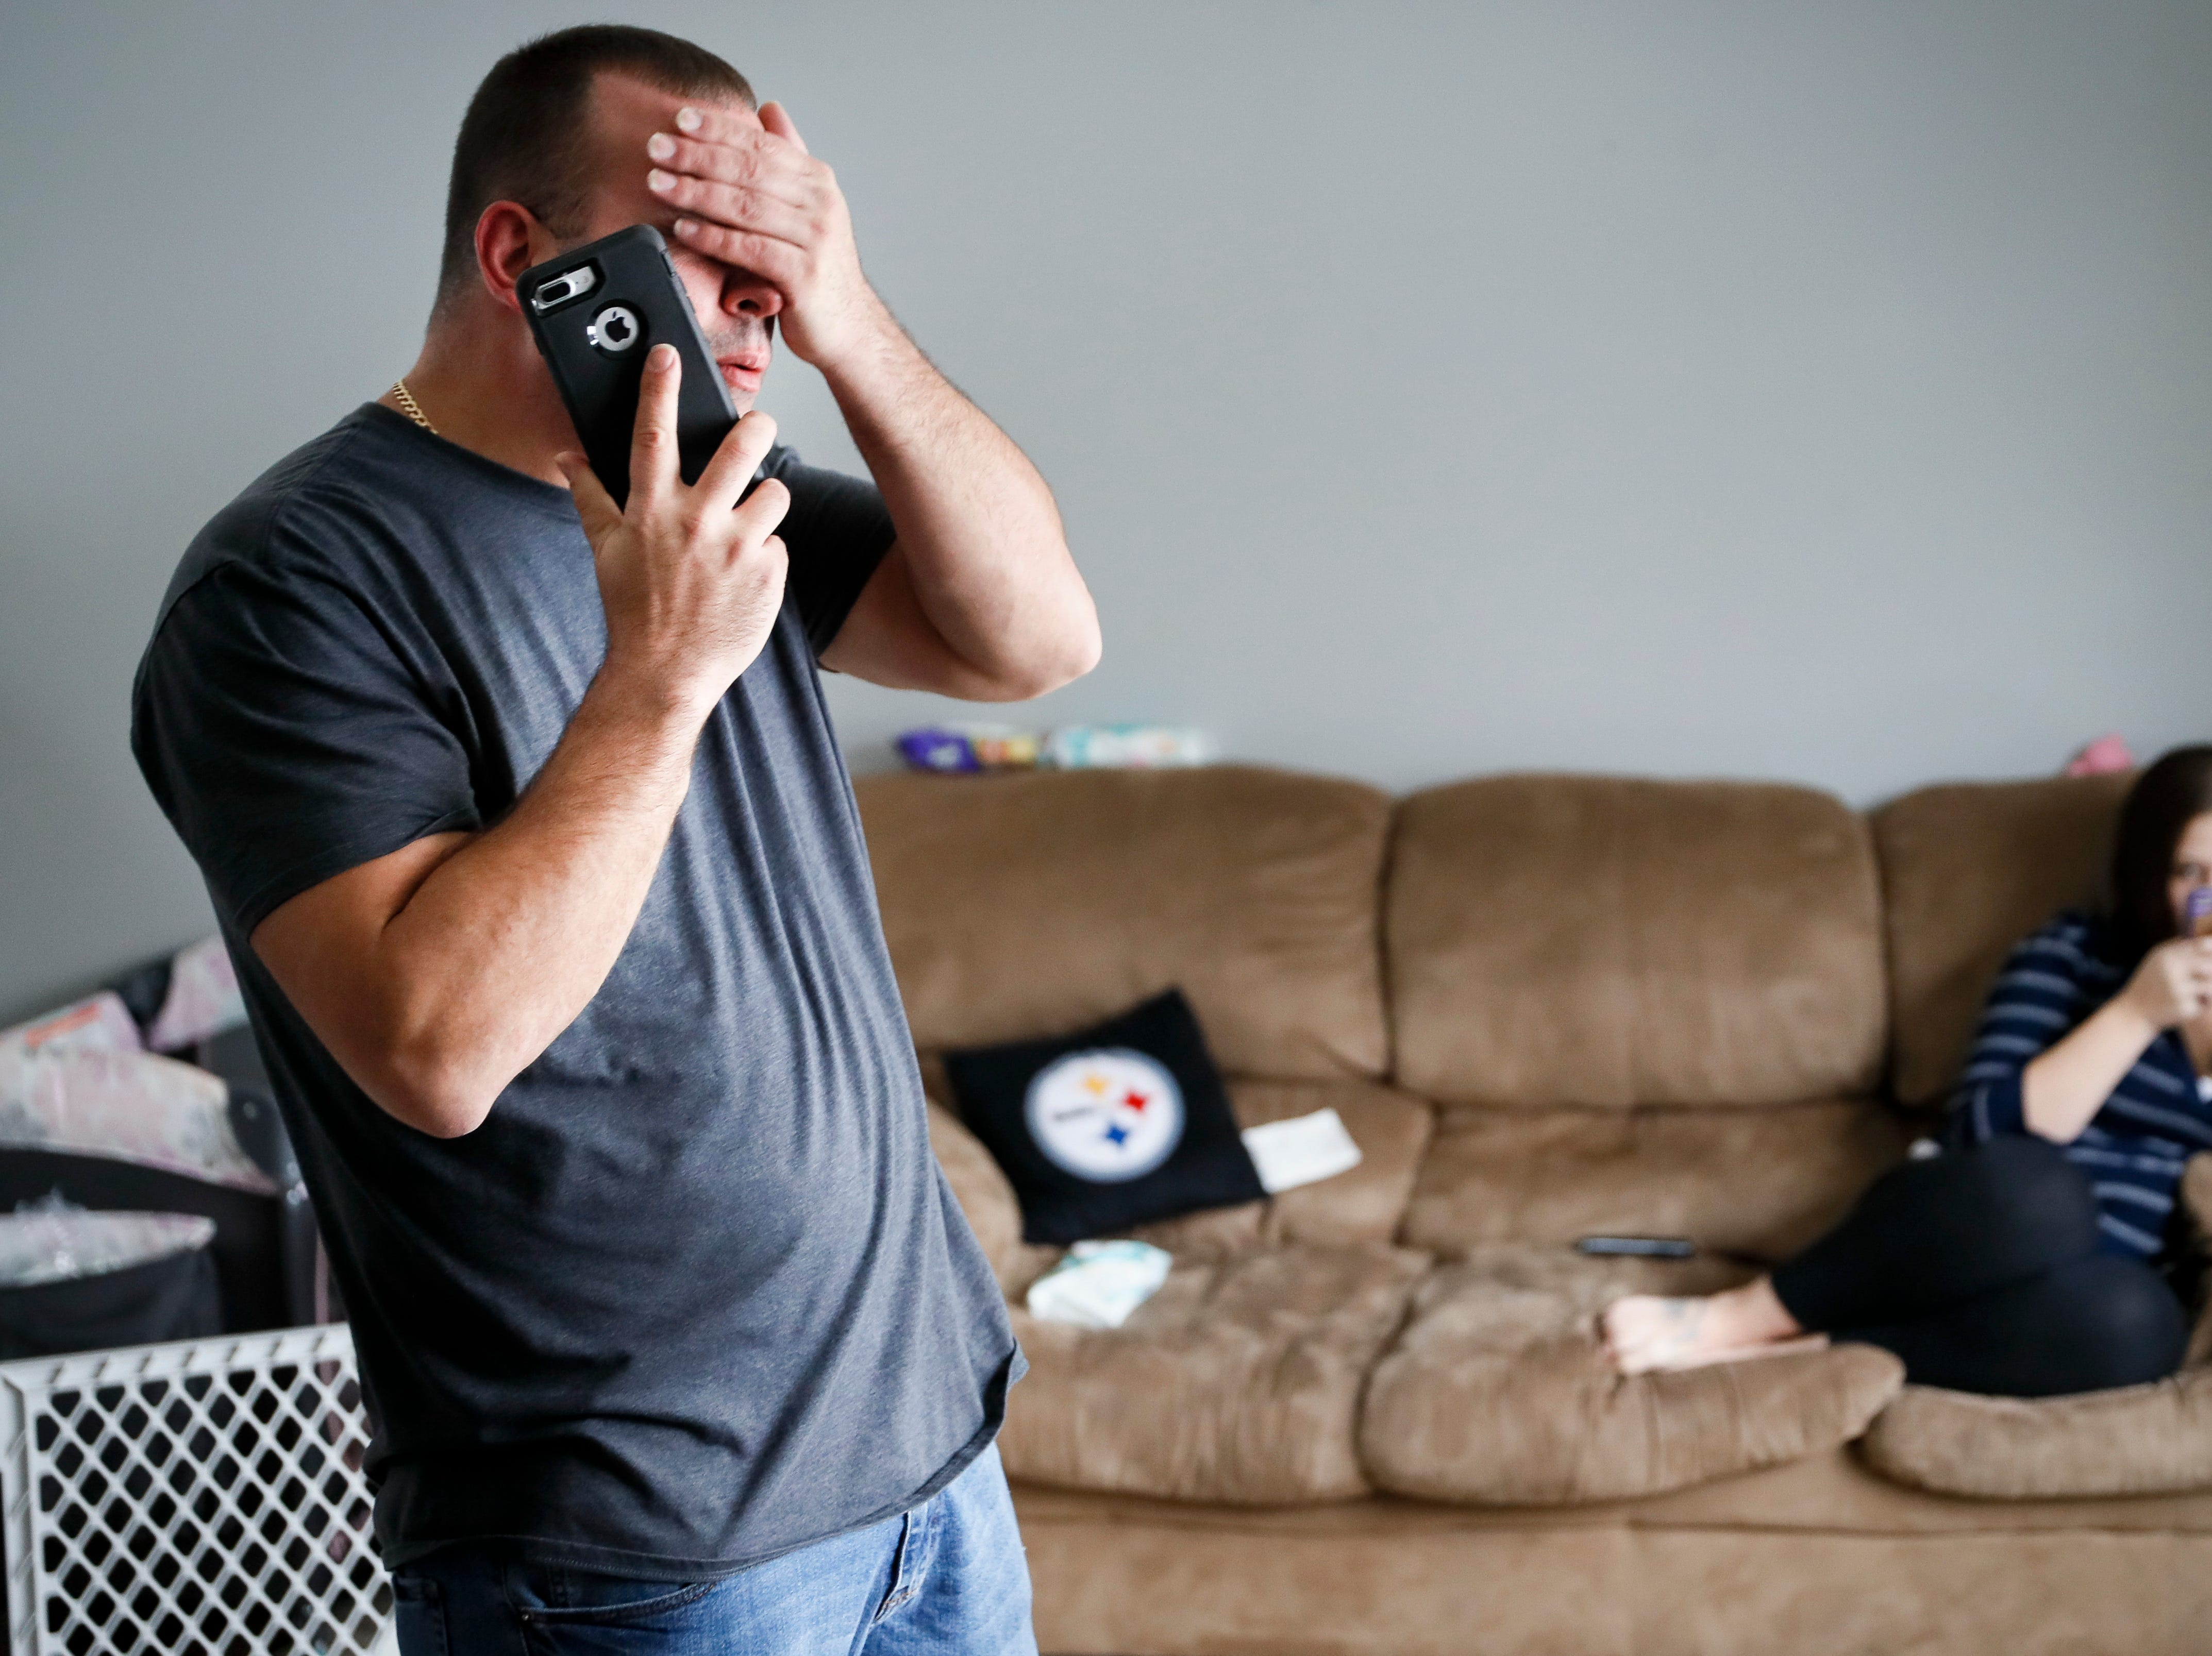 Tom Wolikow, a General Motors employee who is currently laid-off,  takes a phone call at home alongside his fiance Rochelle Carlisle, on Wednesday, Nov. 28, 2018, in Warren, Ohio. Though unemployment is low, the economy is growing and U.S. auto sales are near historic highs, GM is cutting thousands of jobs in a major restructuring aimed at generating cash to spend on innovation. GM put five plants up for possible closure, including the plant in Lordstown.